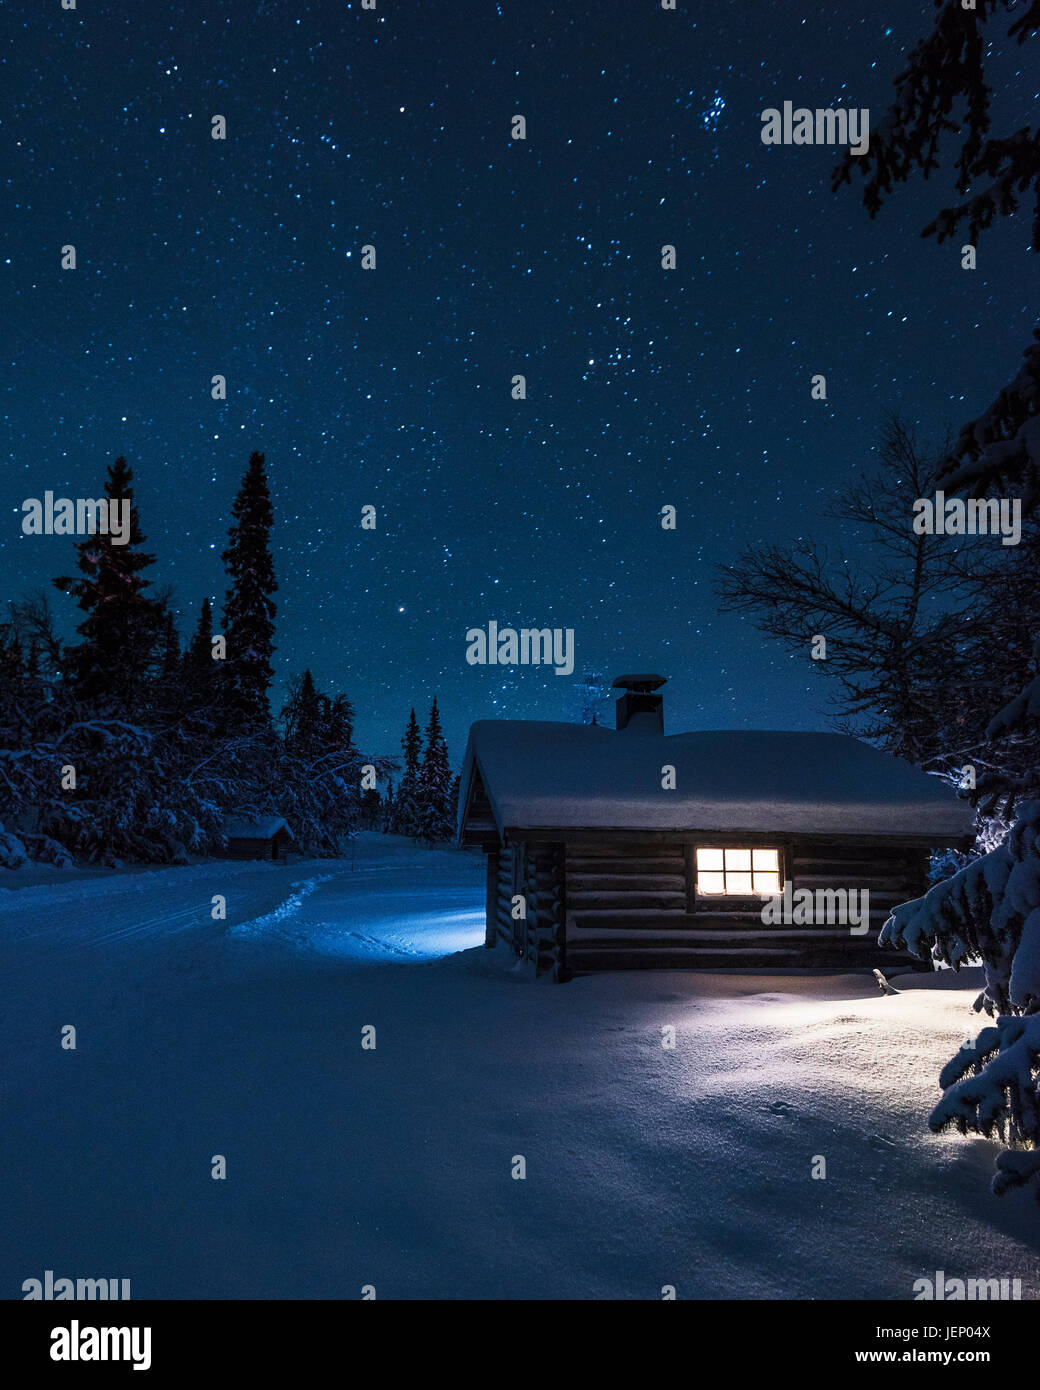 Illuminated log house at night - Stock Image